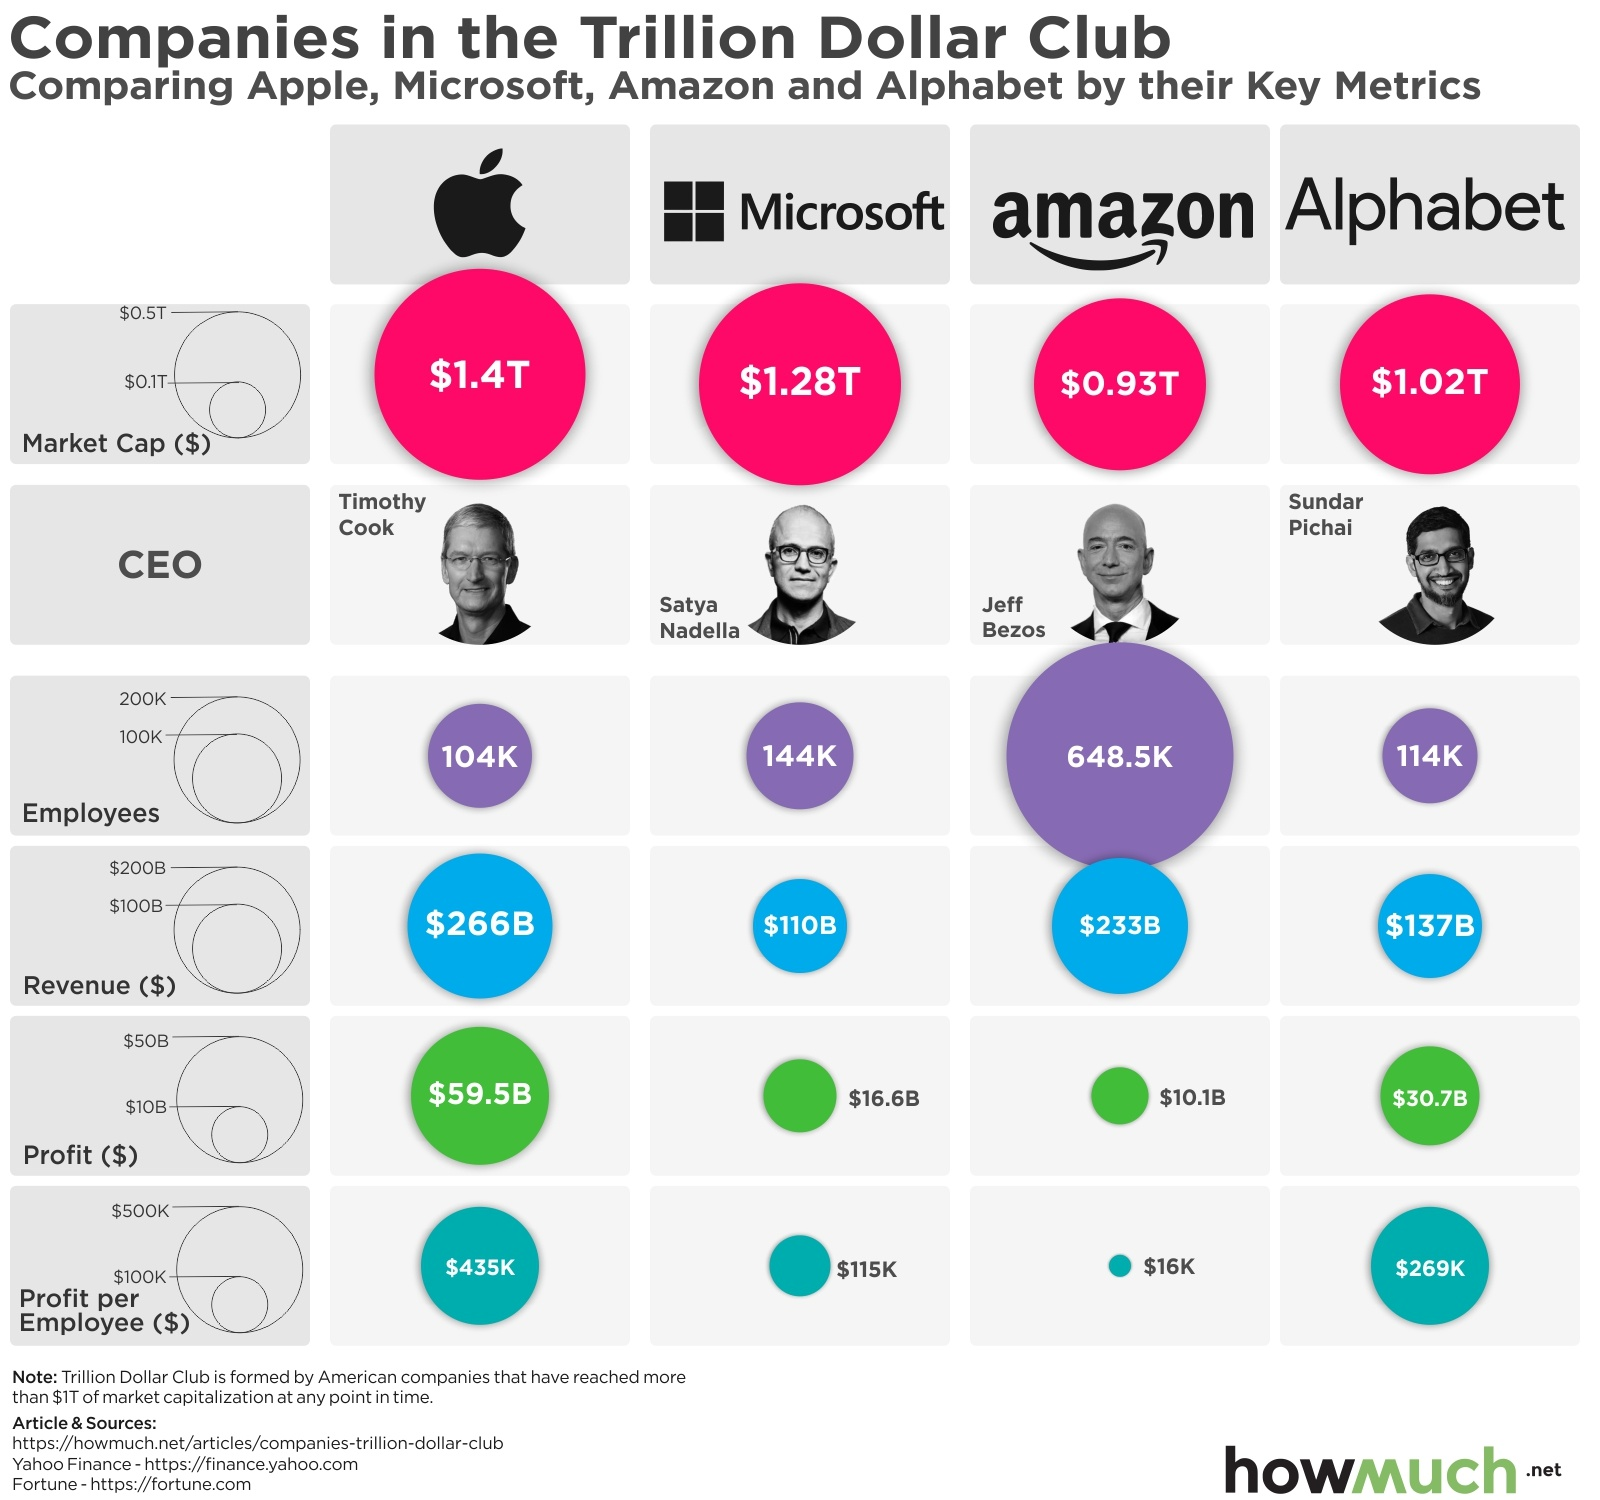 Visualizing Companies in The Trillion Dollar Club